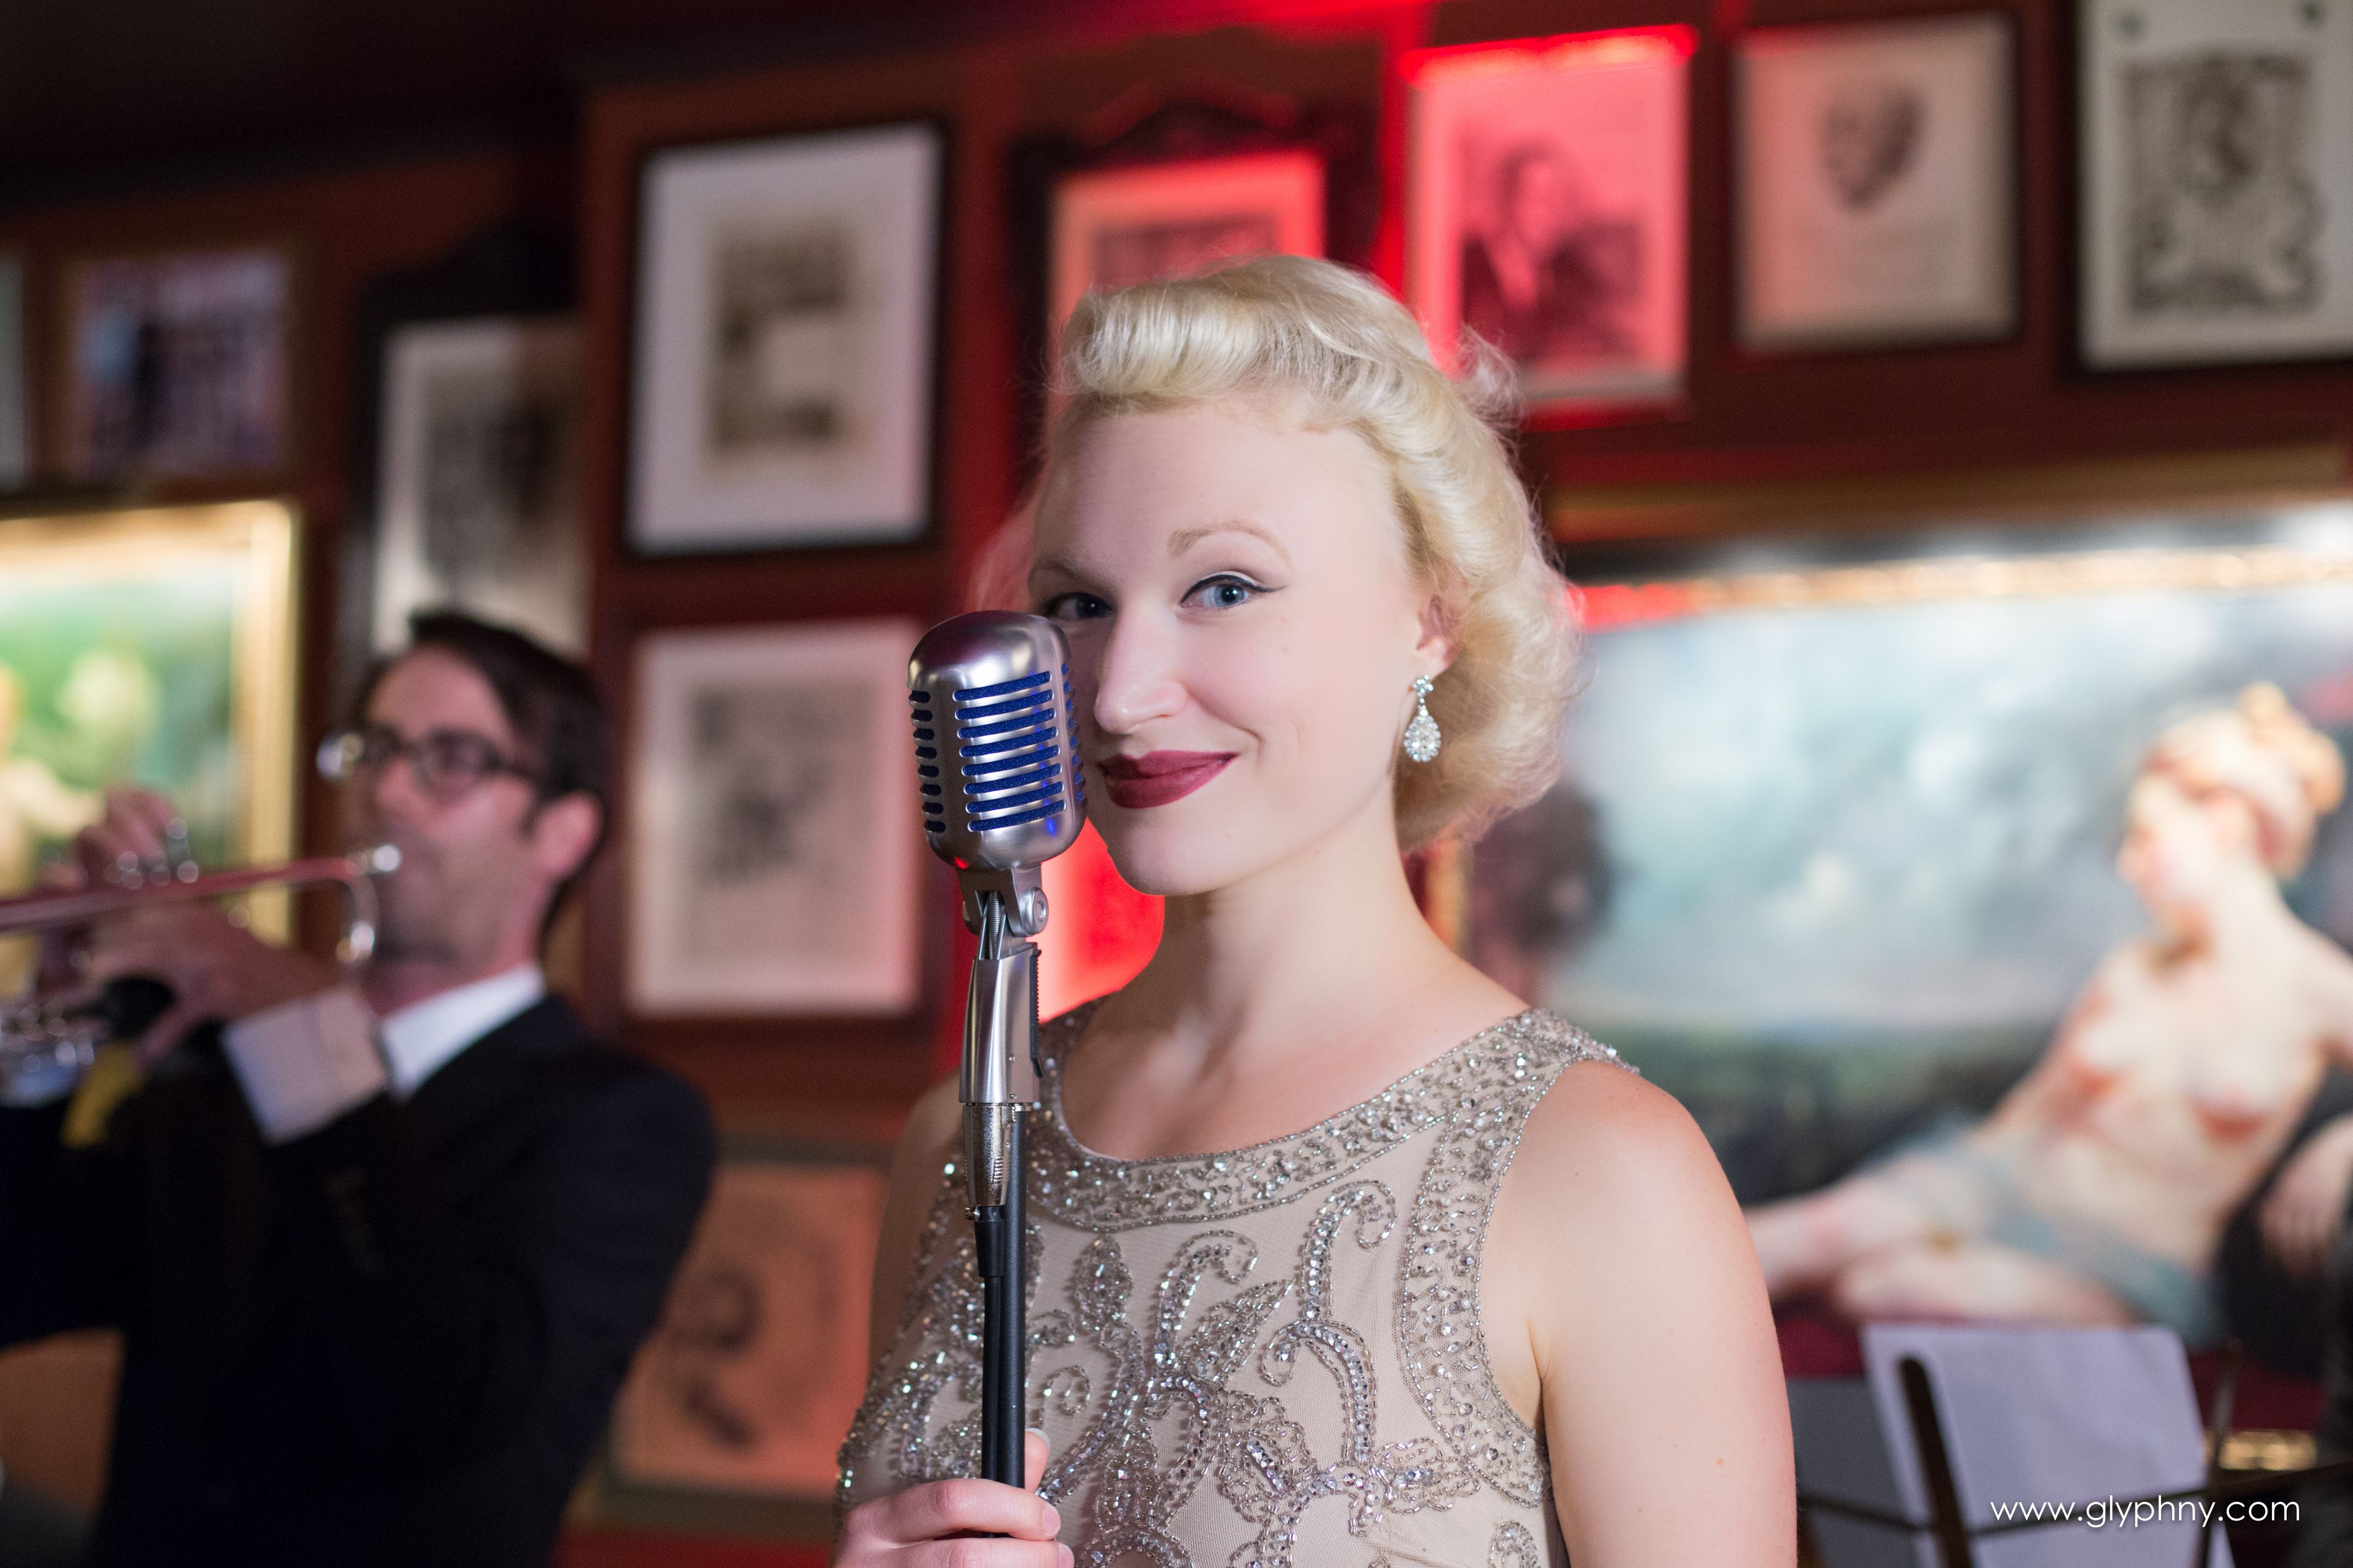 Music for your wedding day! Fleur Seule will bring elegant